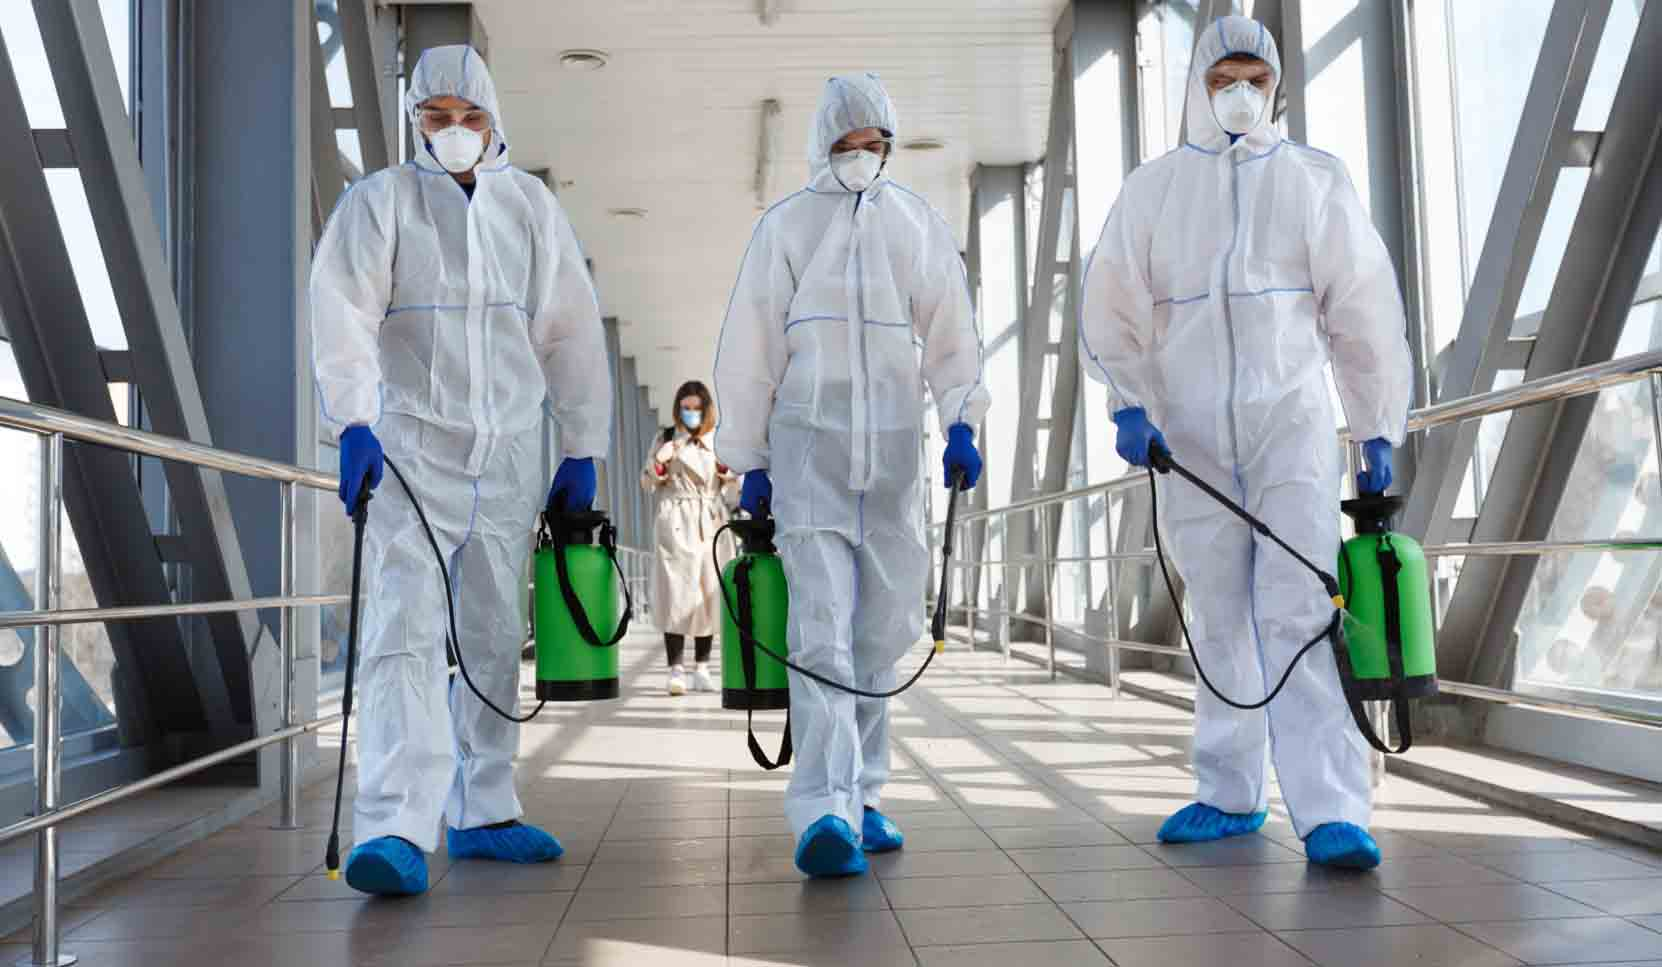 Proliferation of unverified companies seeking to make a quick buck out of the Covid-19 outbreak may cost consumers dearly